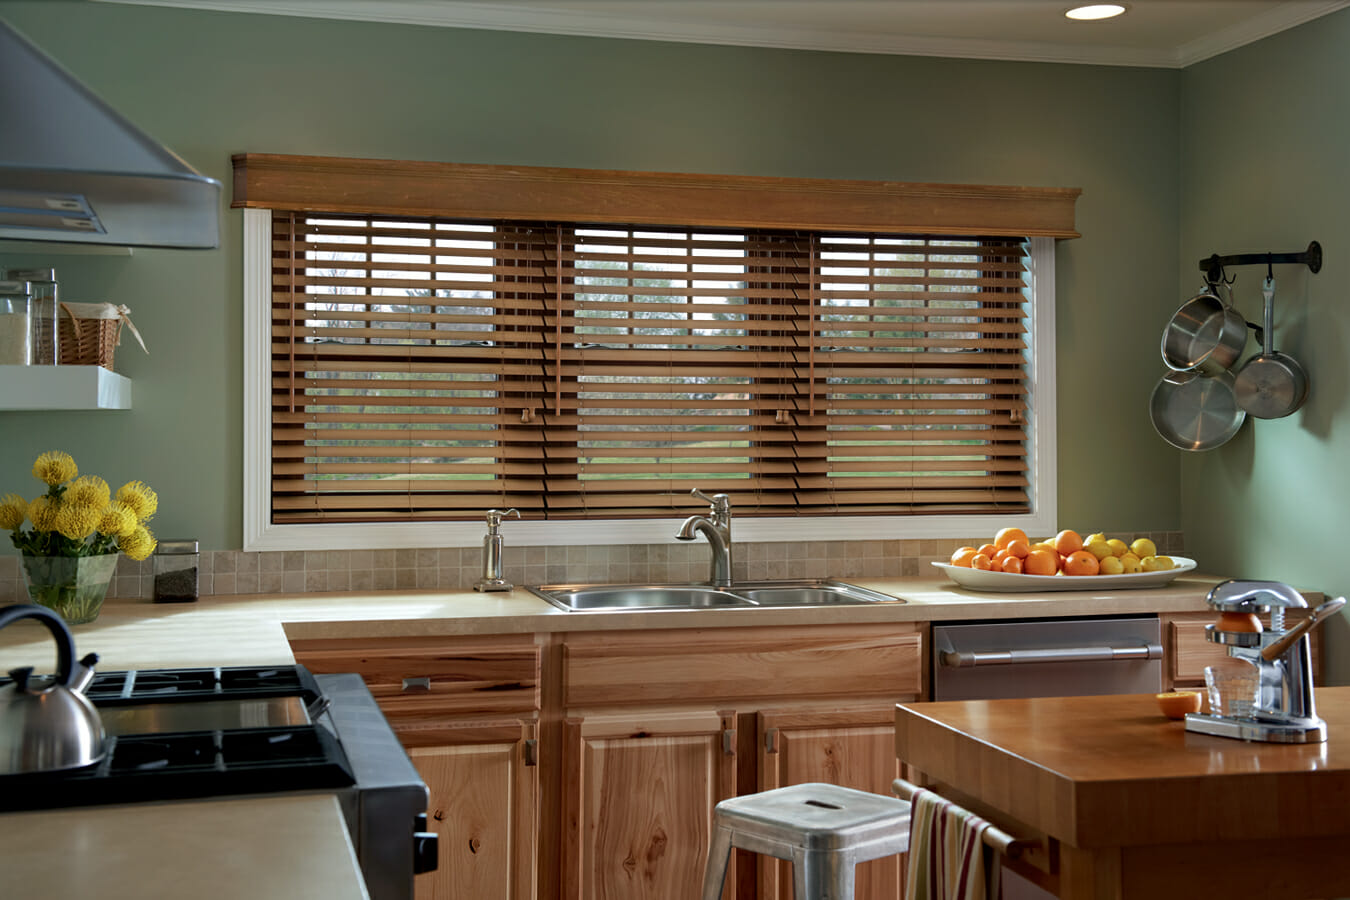 Kitchen Window Treatment | Kitchen Window Treatment Ideas 3 Blind Mice Window Coverings